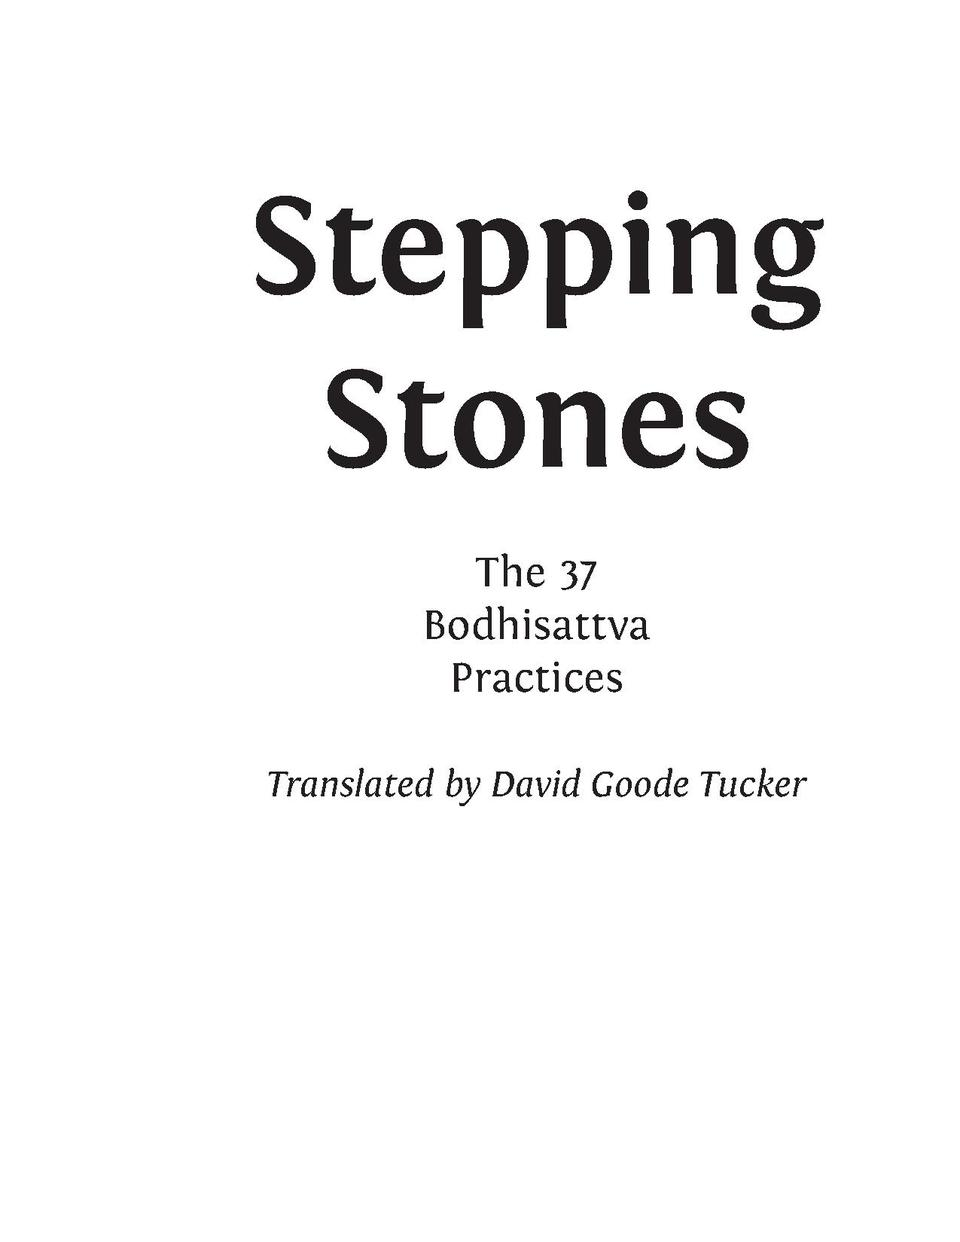 Stepping Stones The 37 Bodhisattva Practices Translated by David Goode Tucker